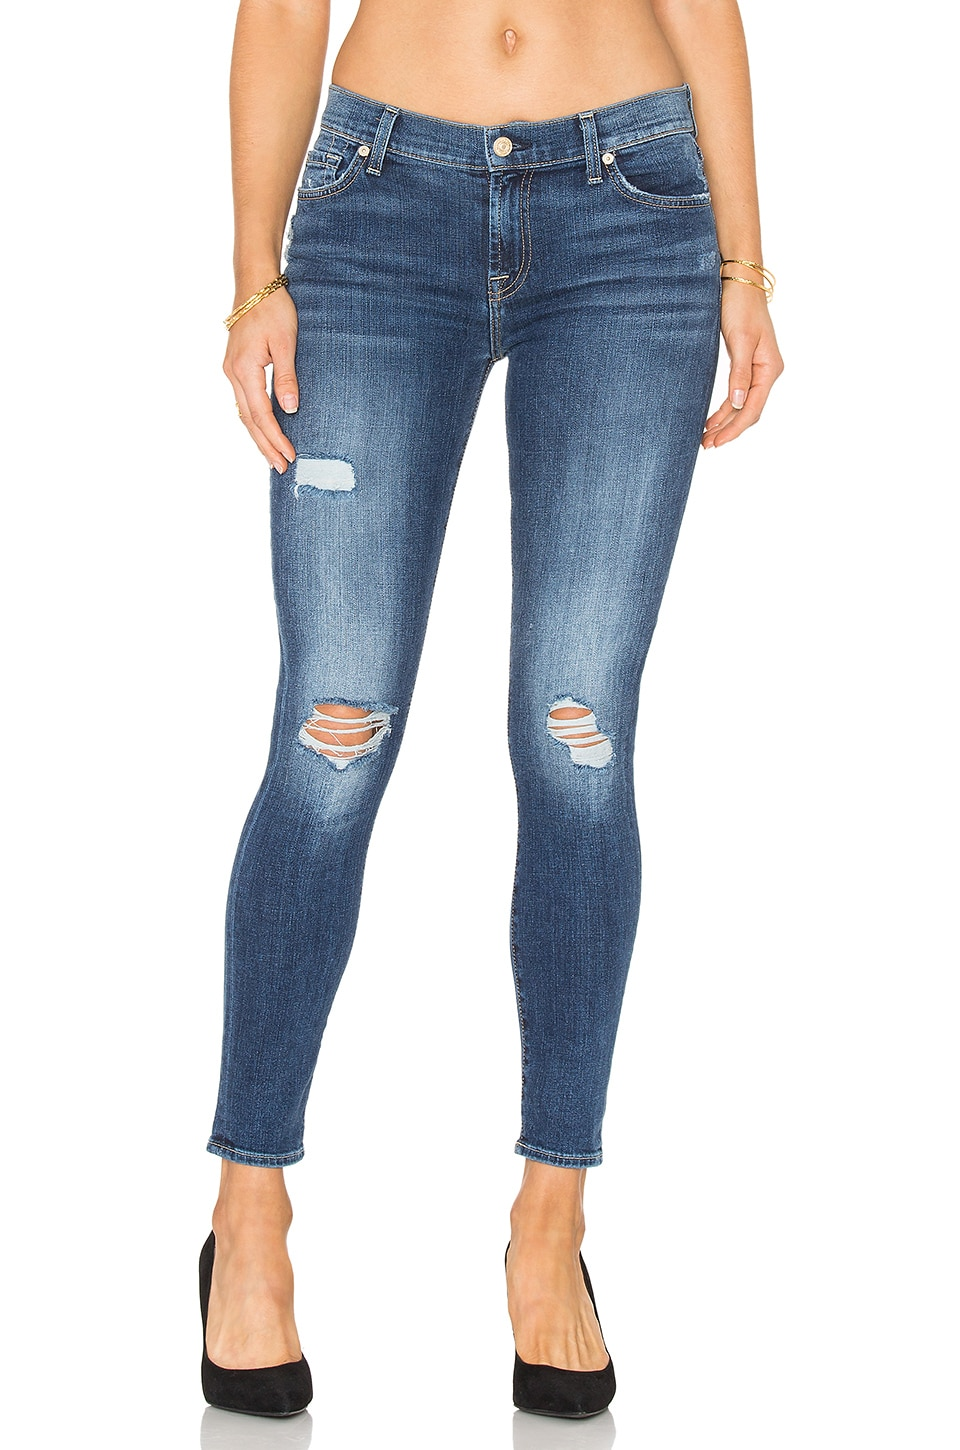 The Distressed Ankle Skinny by 7 For All Mankind